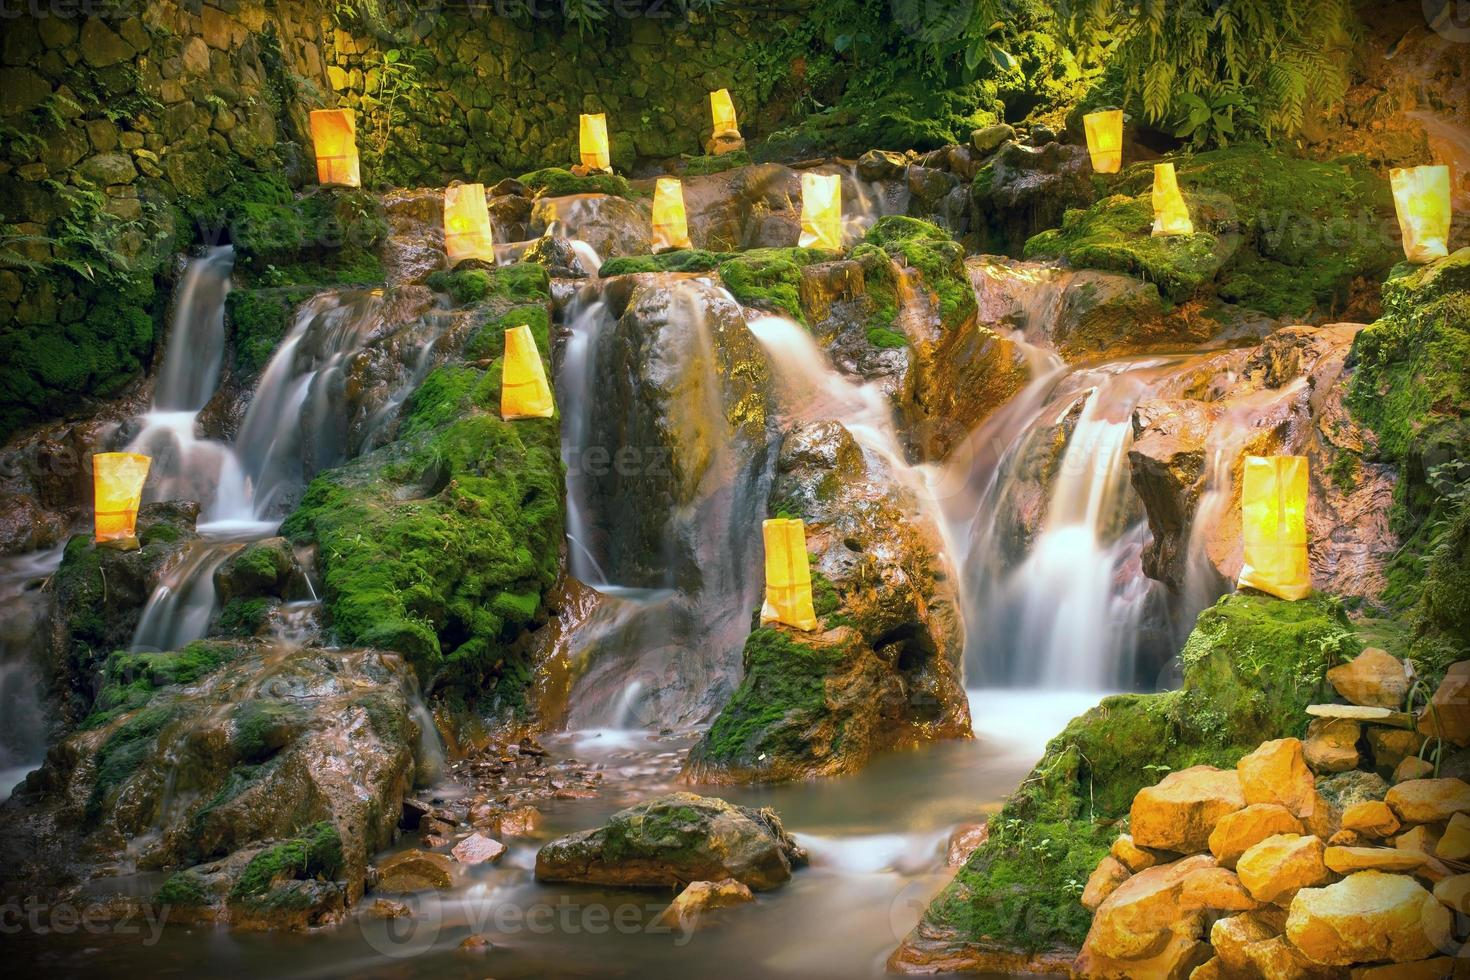 nature with a waterfall that looks rilex, comfortable and refres photo